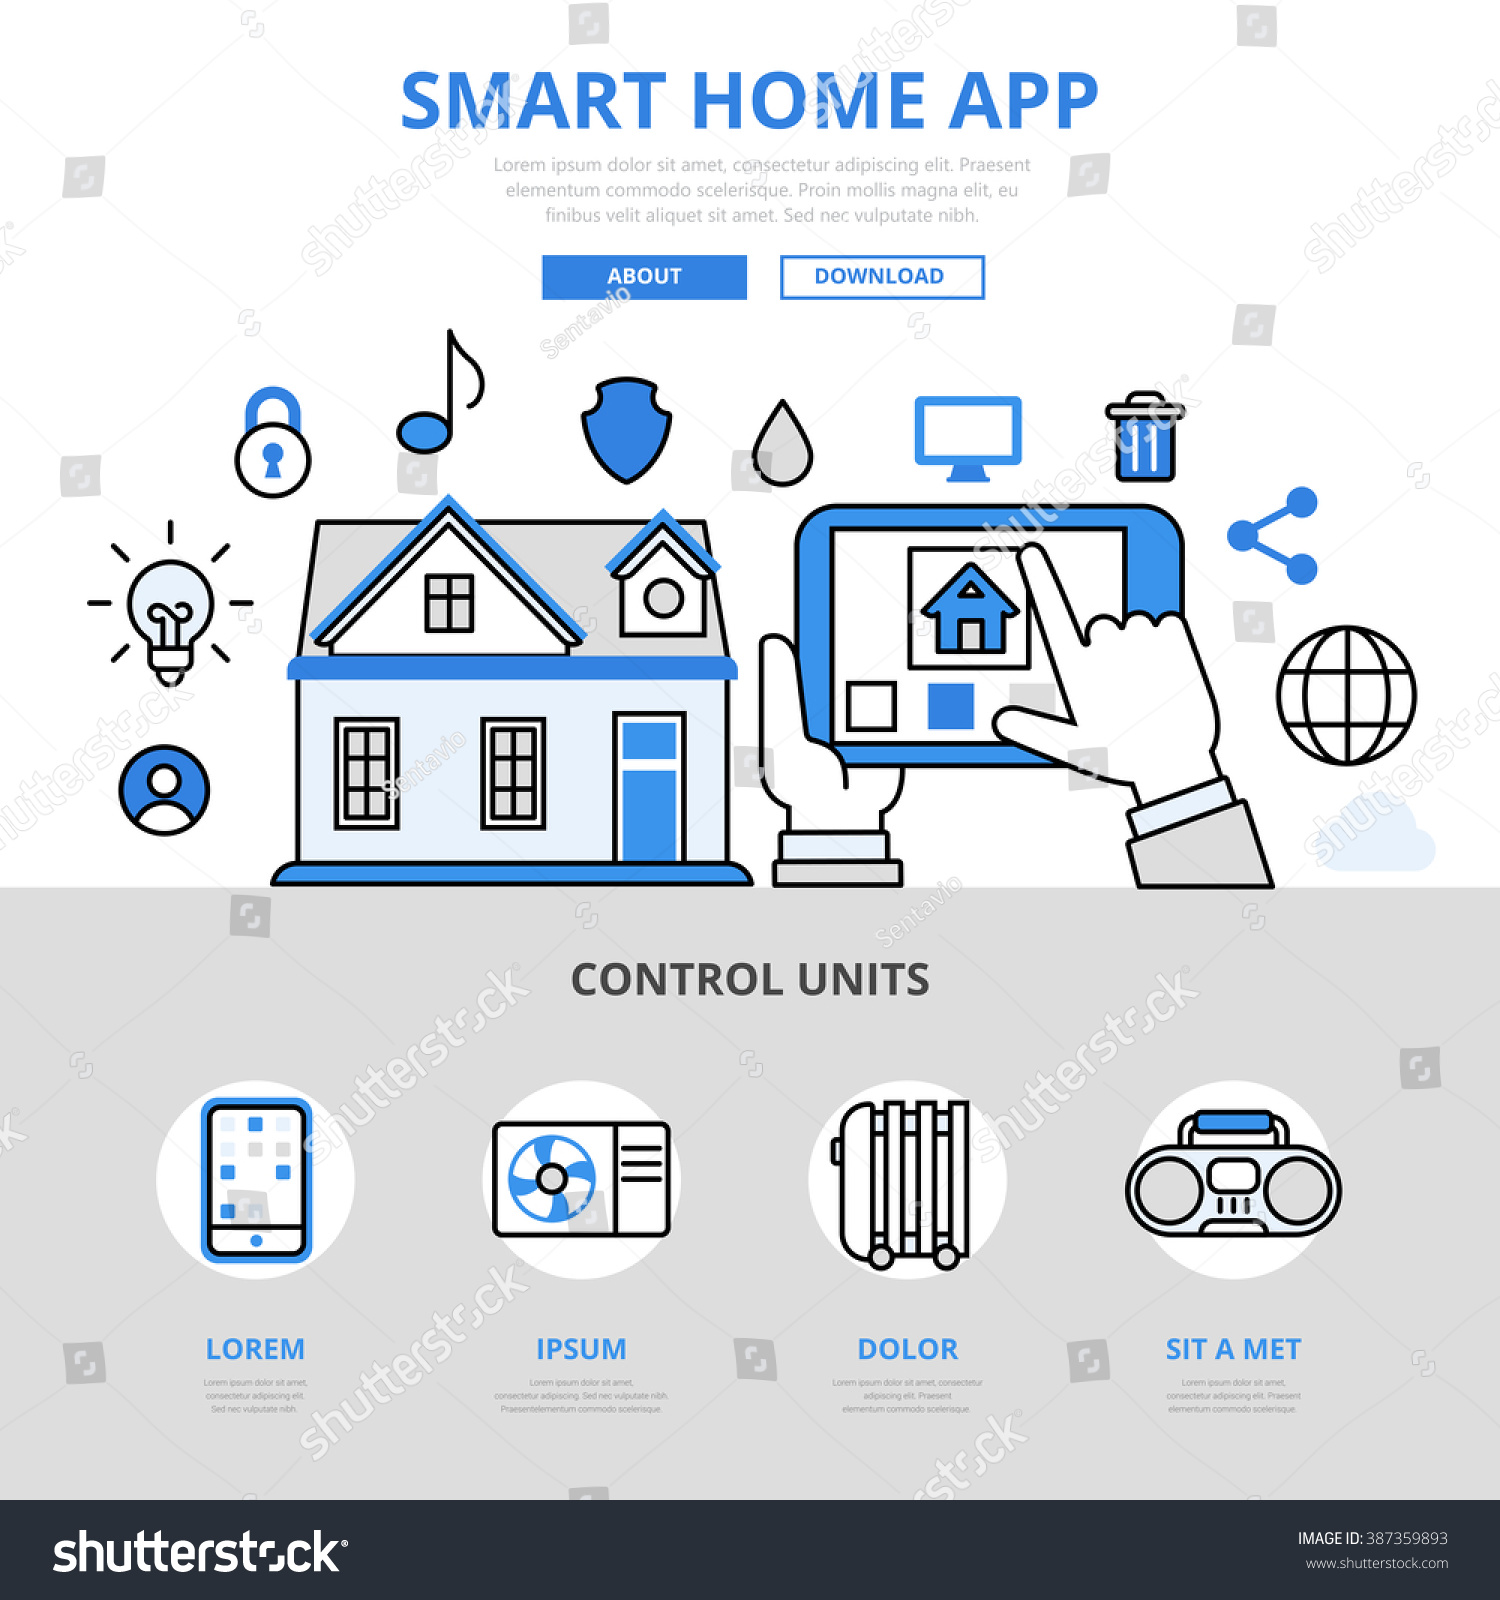 Smart Home App Smart Home App Mobile Application Manage Stock Vector